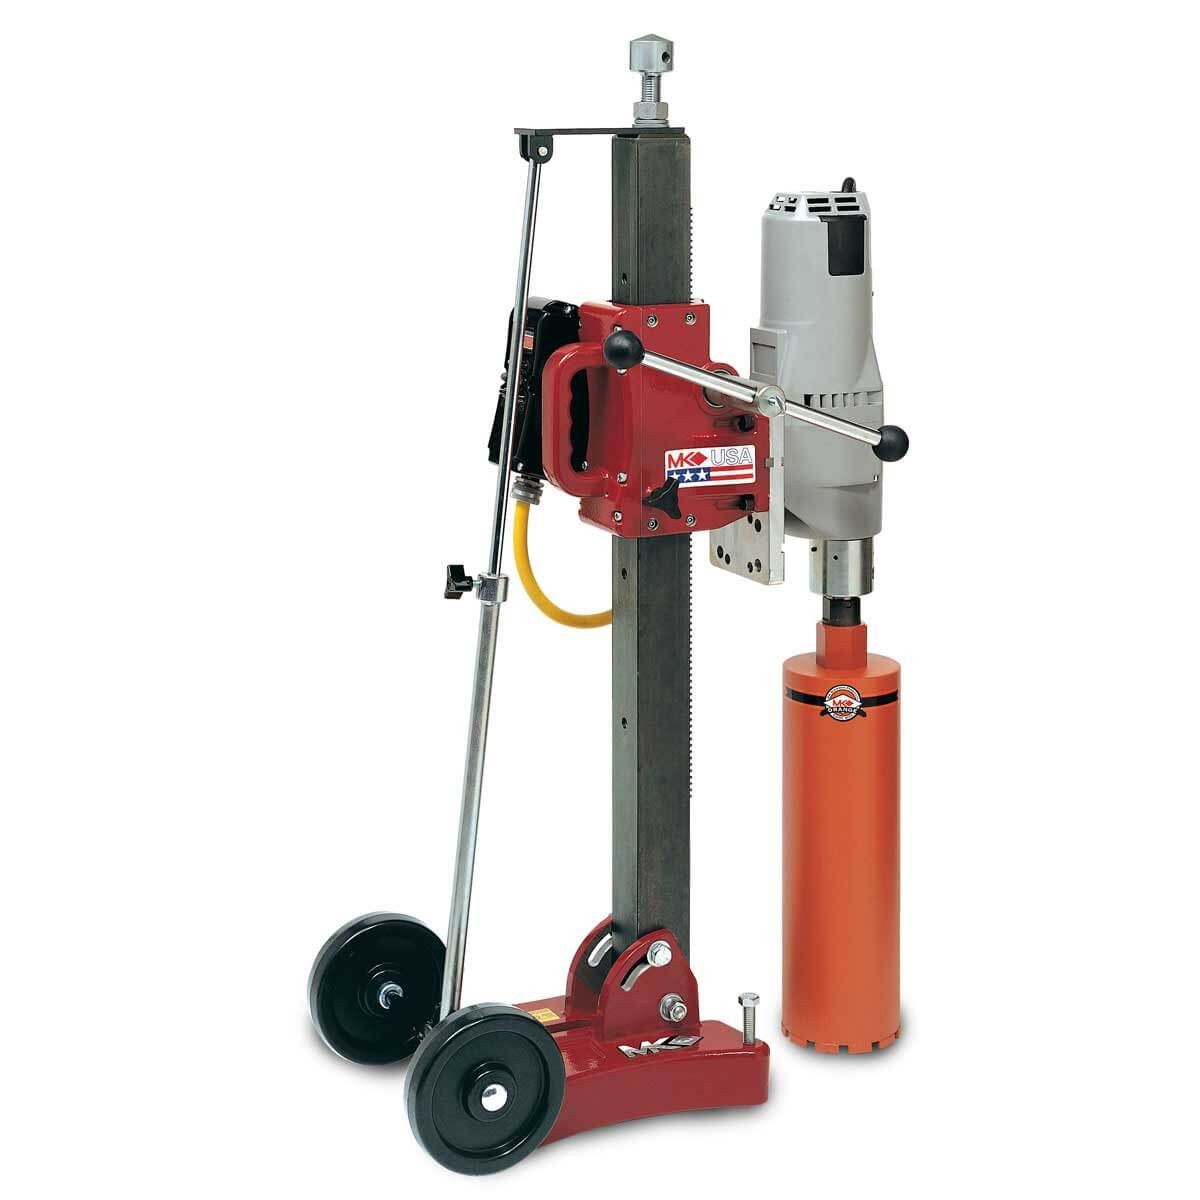 MK Manta III Tilt Base core drill